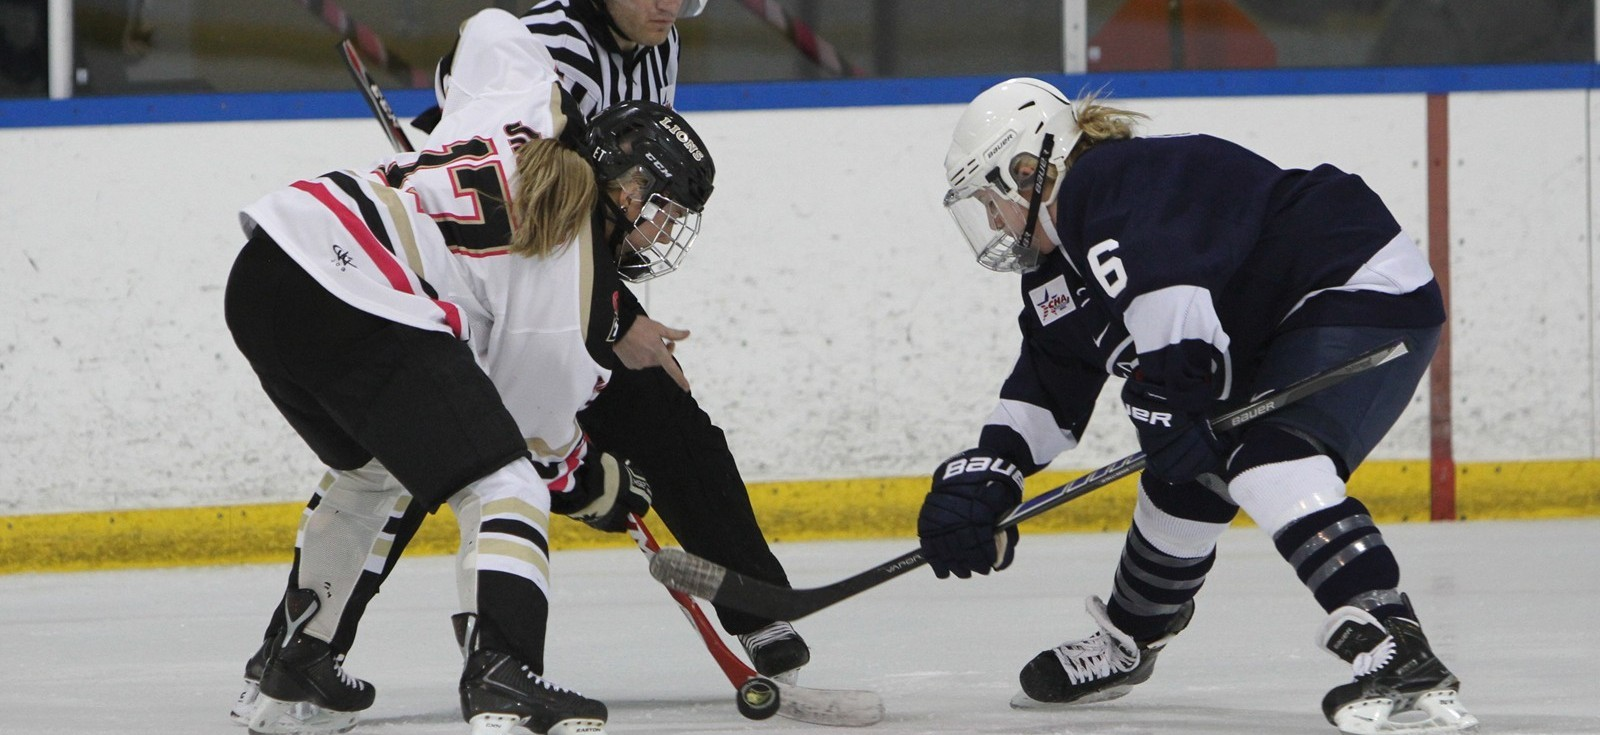 Women s Hockey Opens CHA Playoffs At Penn State - Lindenwood ... 94c86bc32